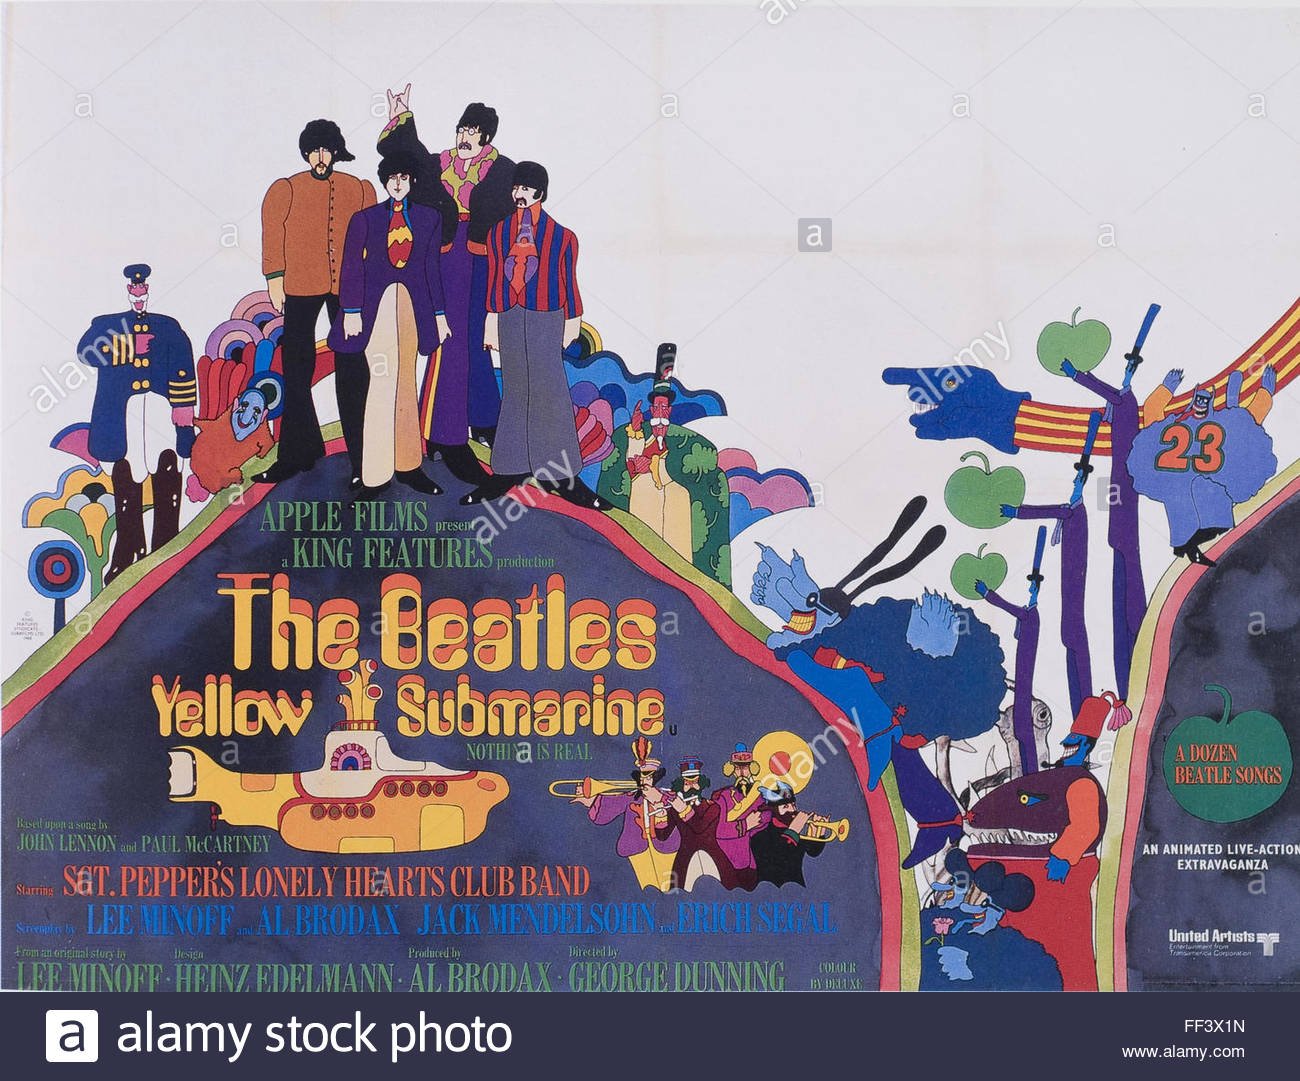 The Beatles - Yellow Submarine - Movie Poster - Stock Image